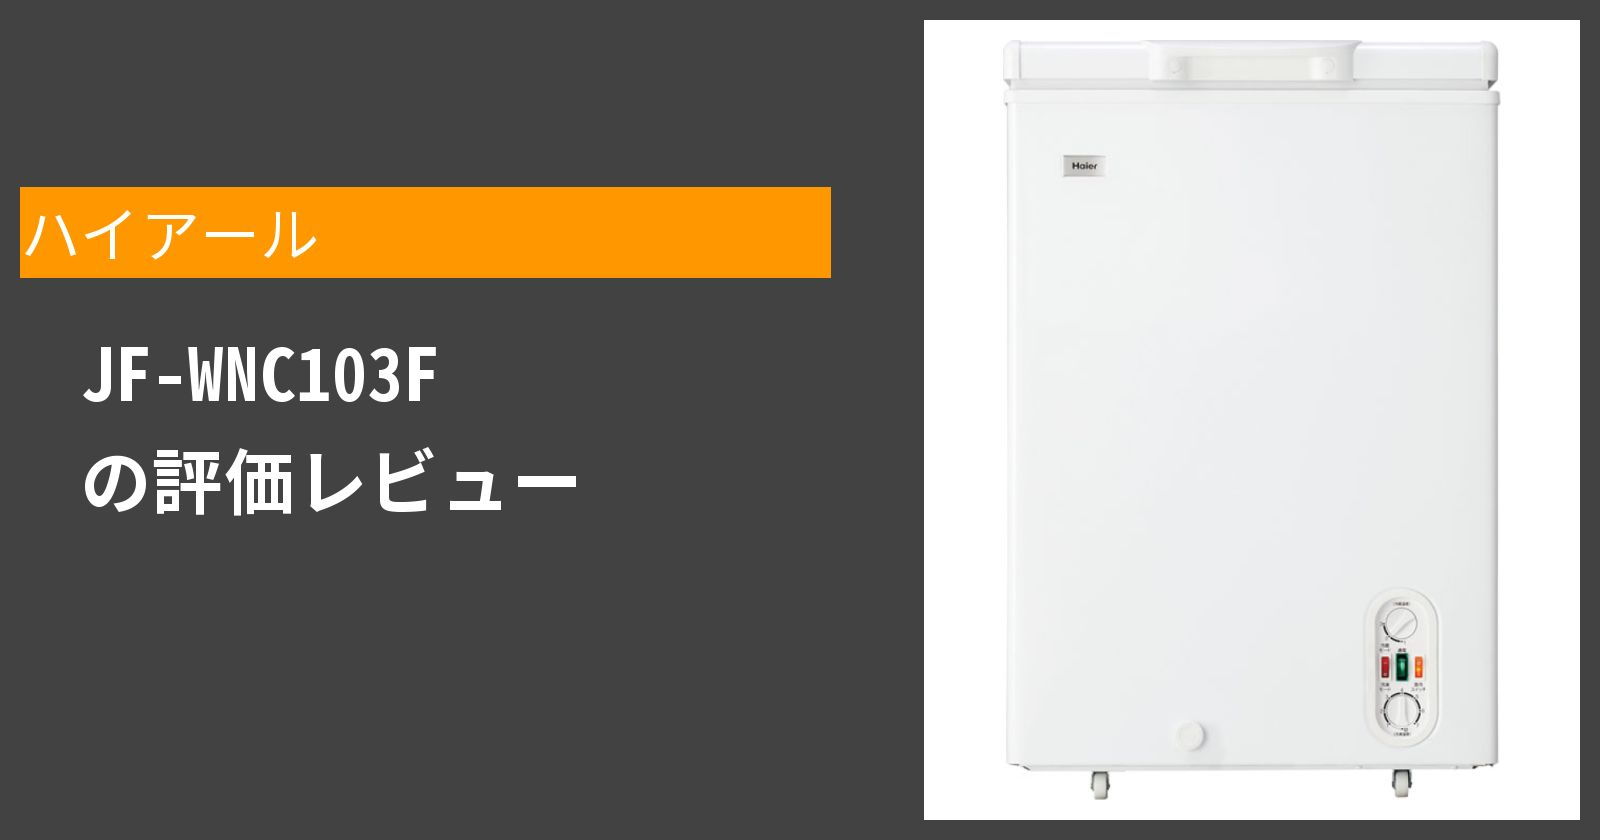 JF-WNC103Fを徹底評価